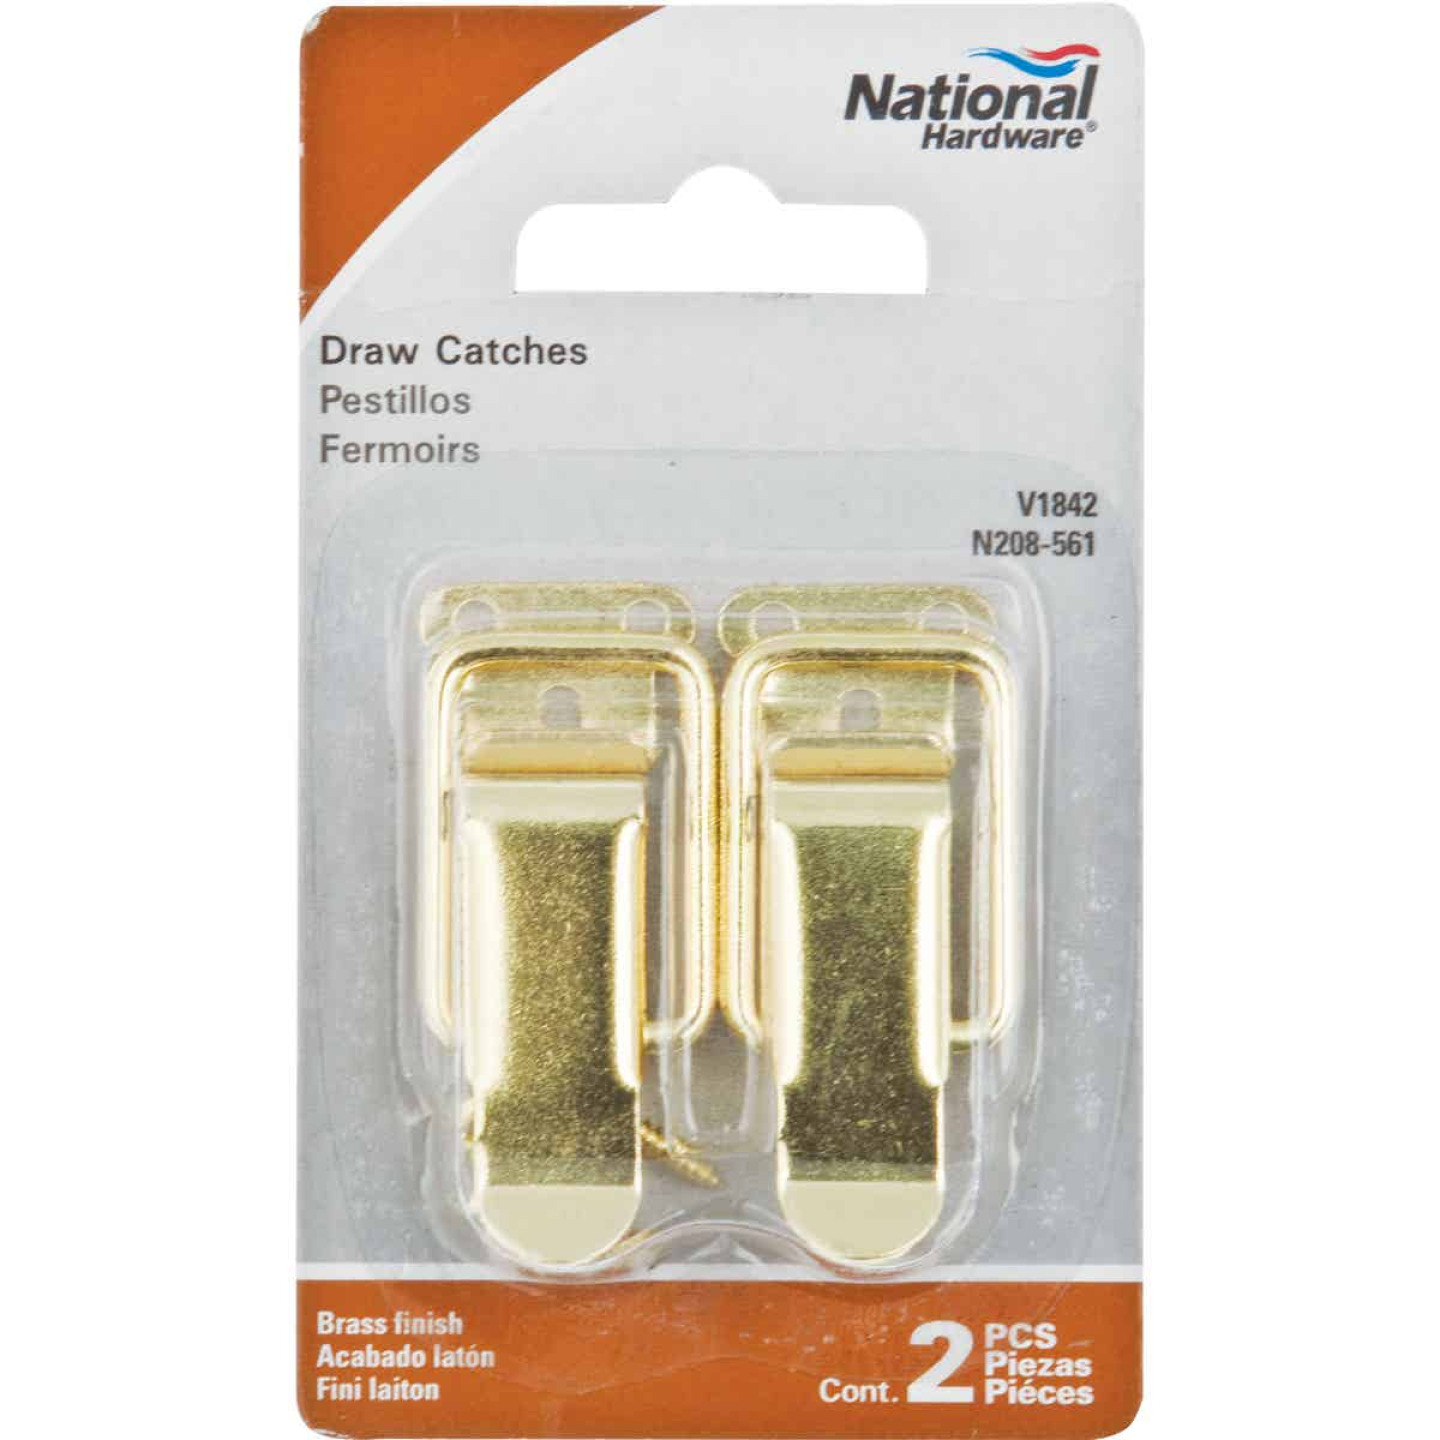 National Catalog V1842 Brass Draw Catch (2-Count) Image 2